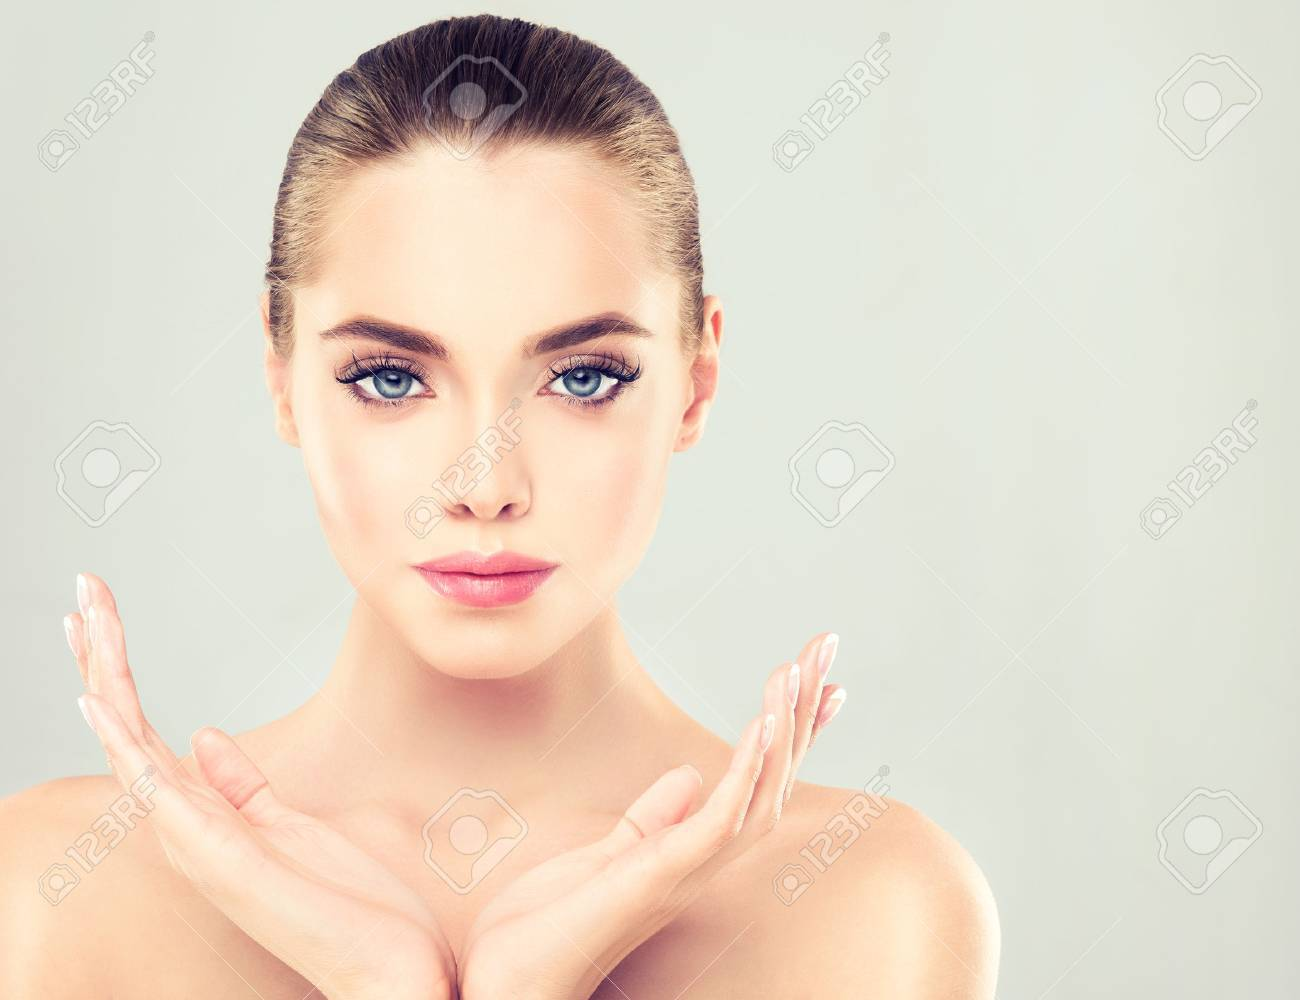 Close-up portrait of young woman with clean fresh skin. Make-up and manicure. - 58233019